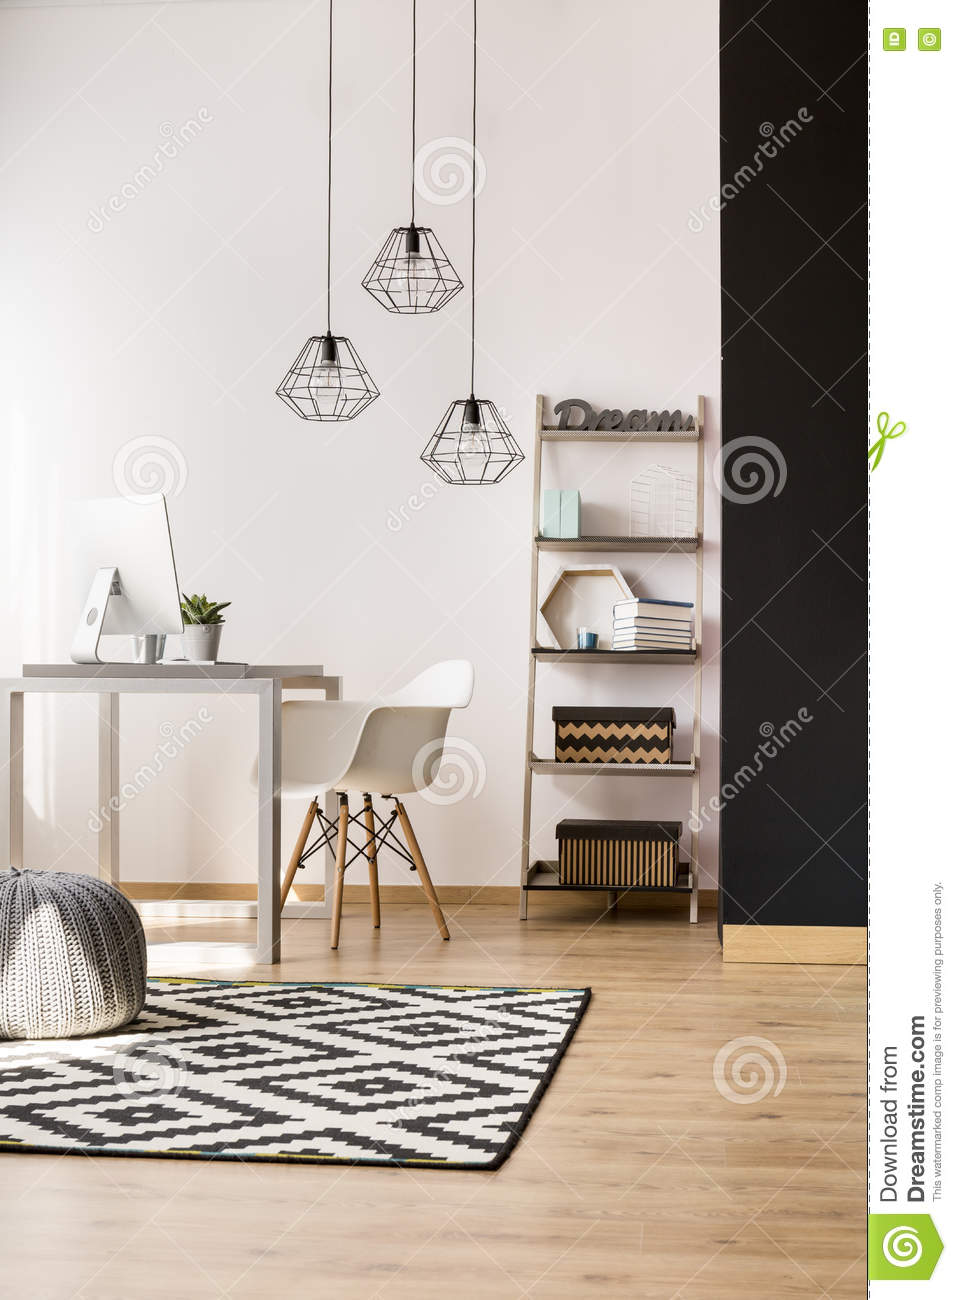 Home Office Decor Stock Photo Image Of House Decoration 81699676